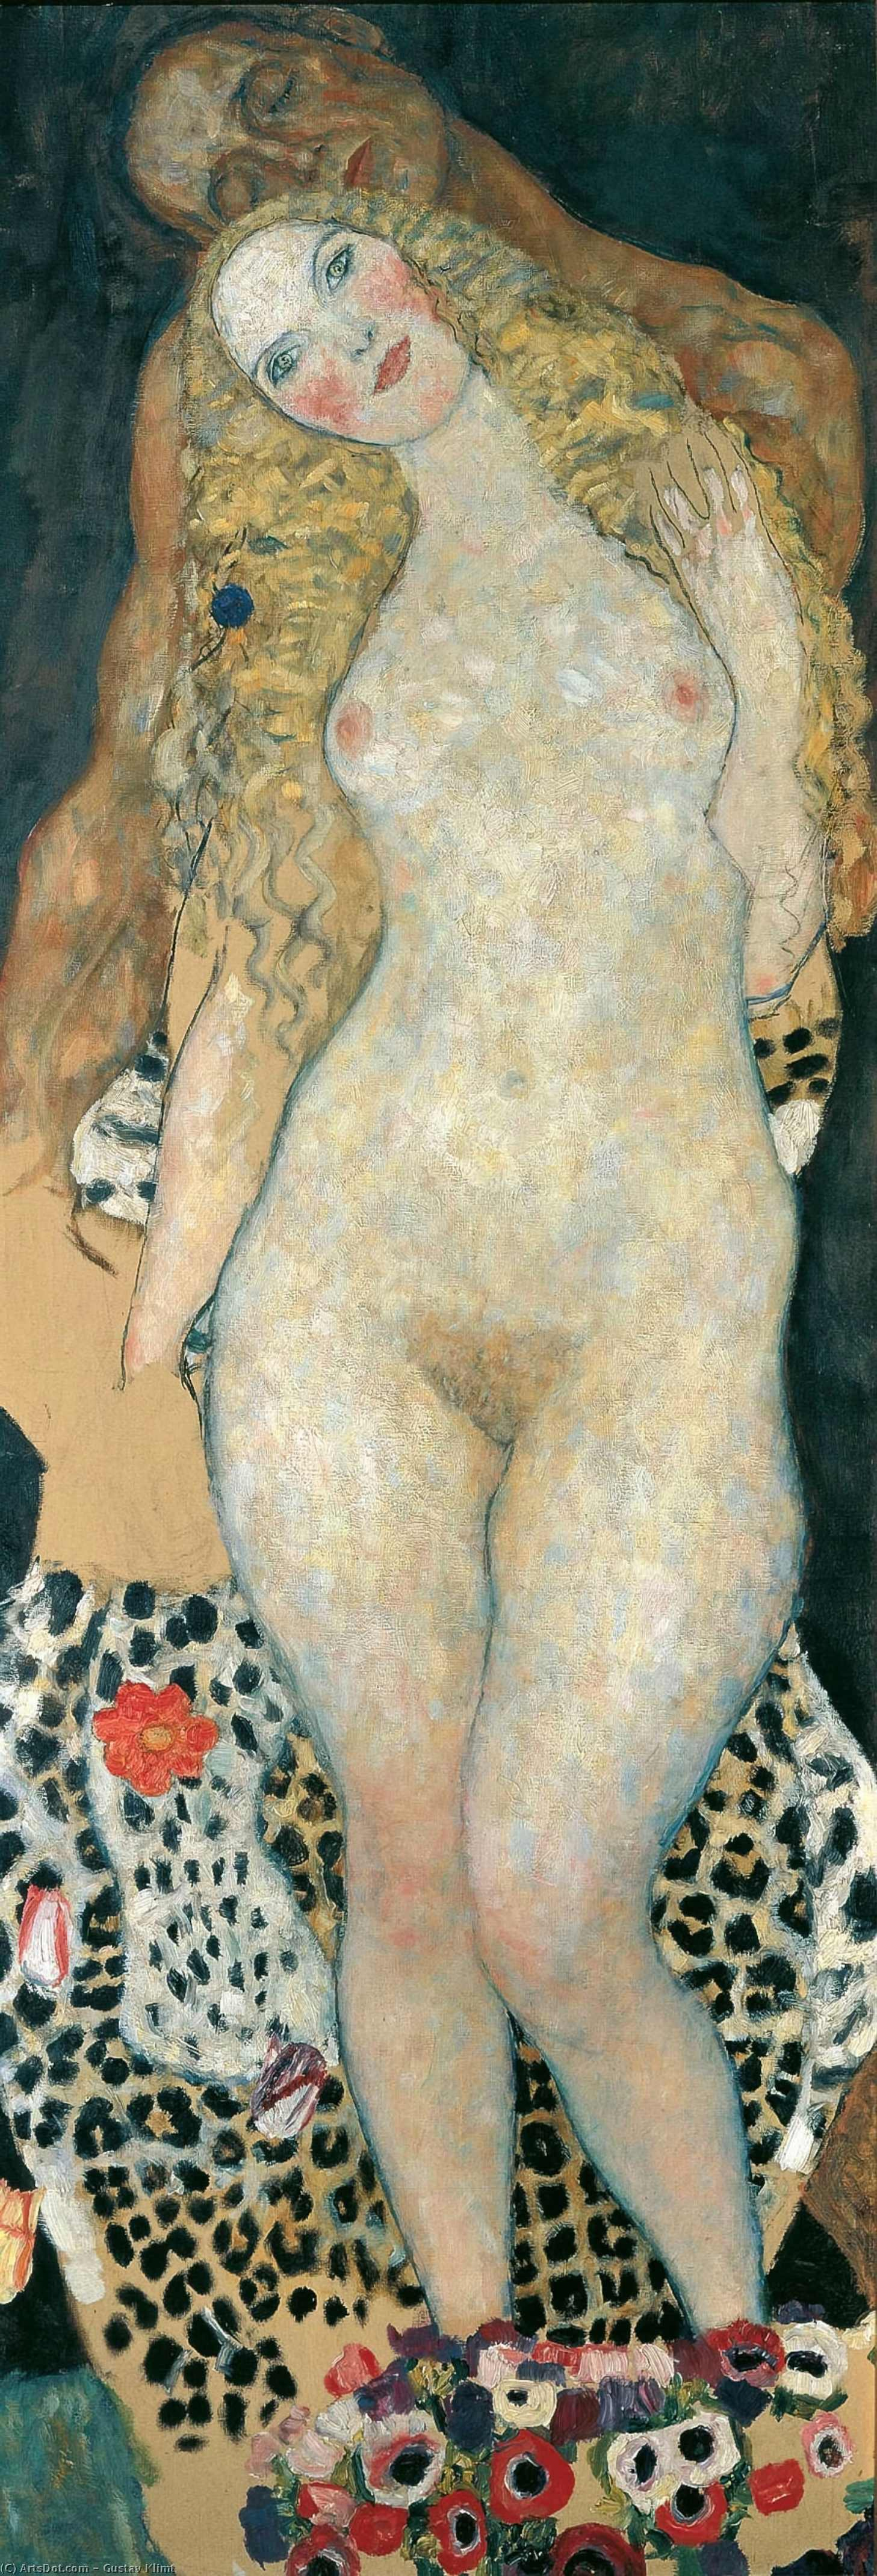 Wikioo.org - The Encyclopedia of Fine Arts - Painting, Artwork by Gustav Klimt - Adam and Eve(unfinished)